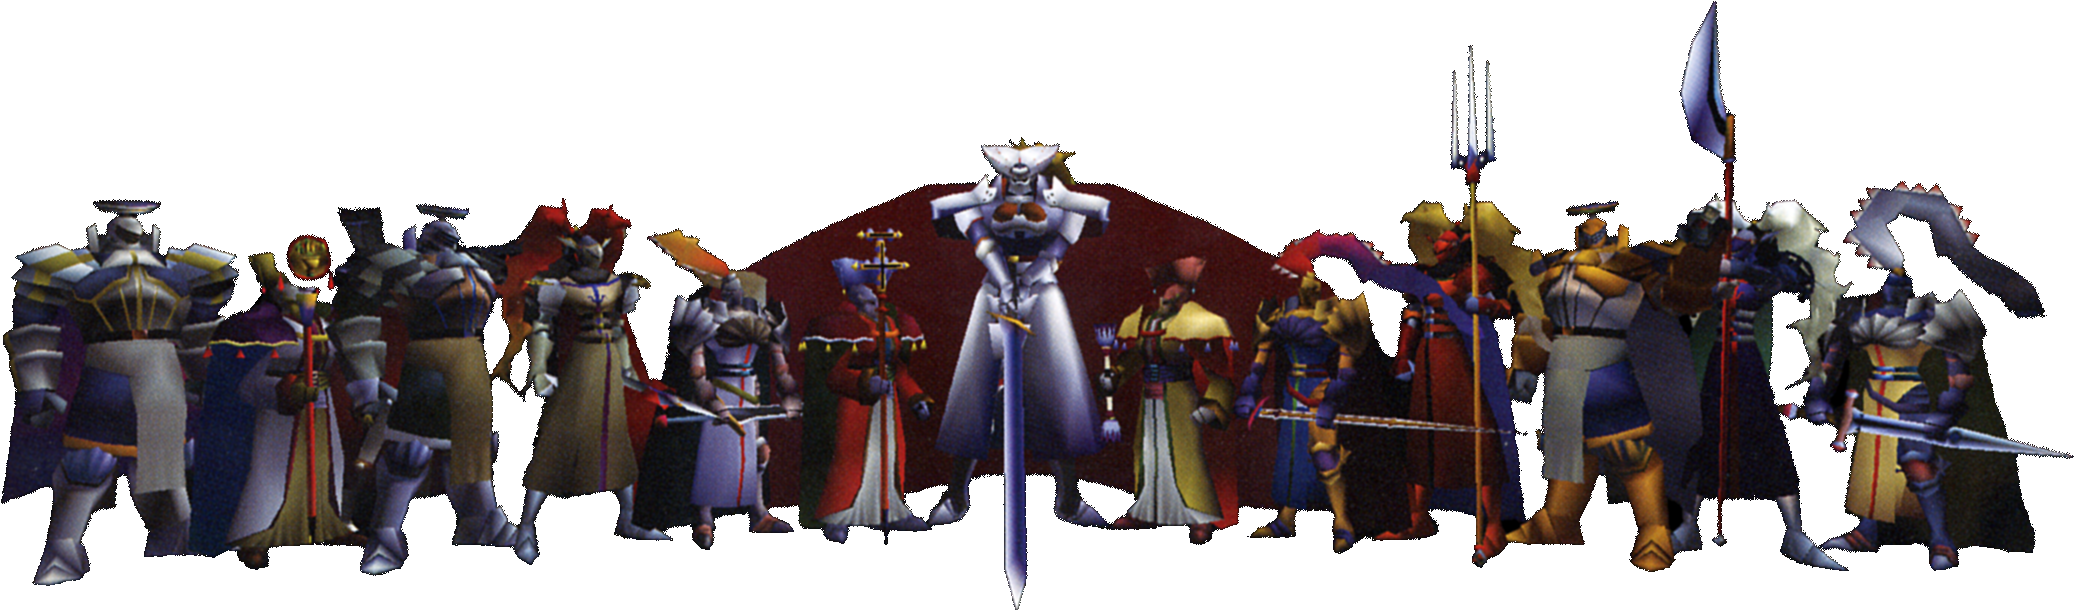 Your favorite least favorite final fantasy summons for 10 knights of the round table